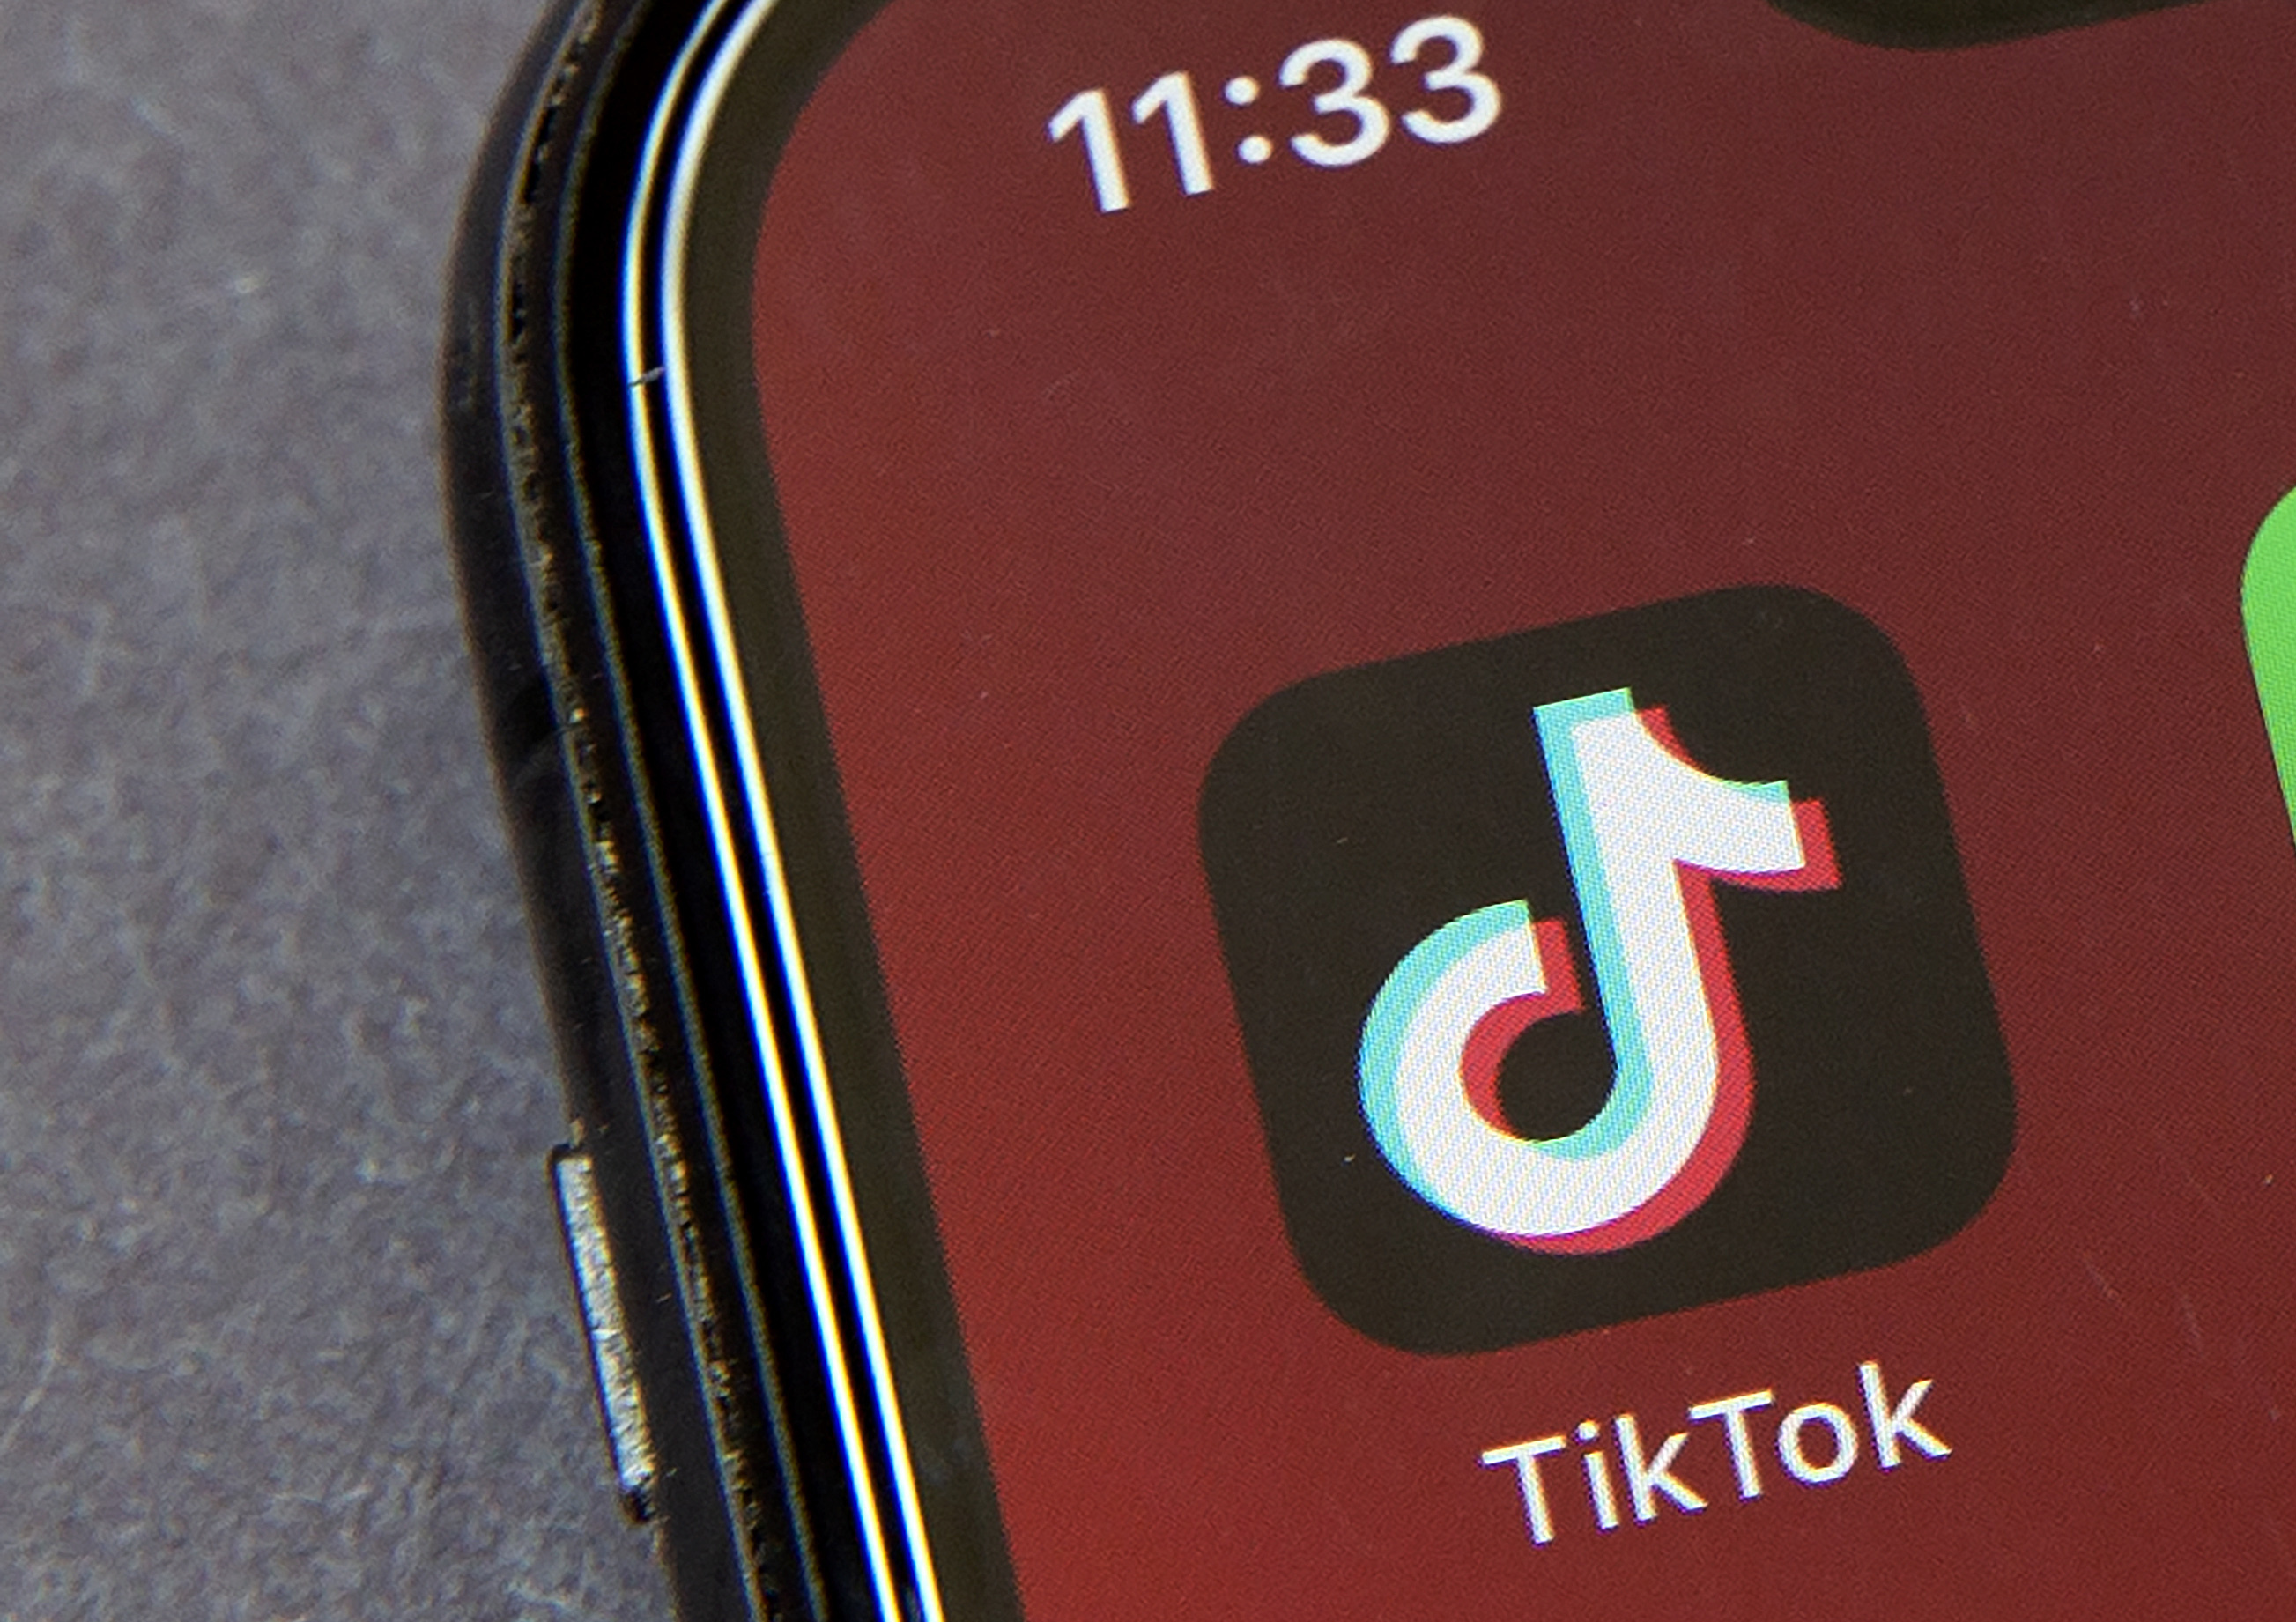 TikTok has dodged a ban in the United States again